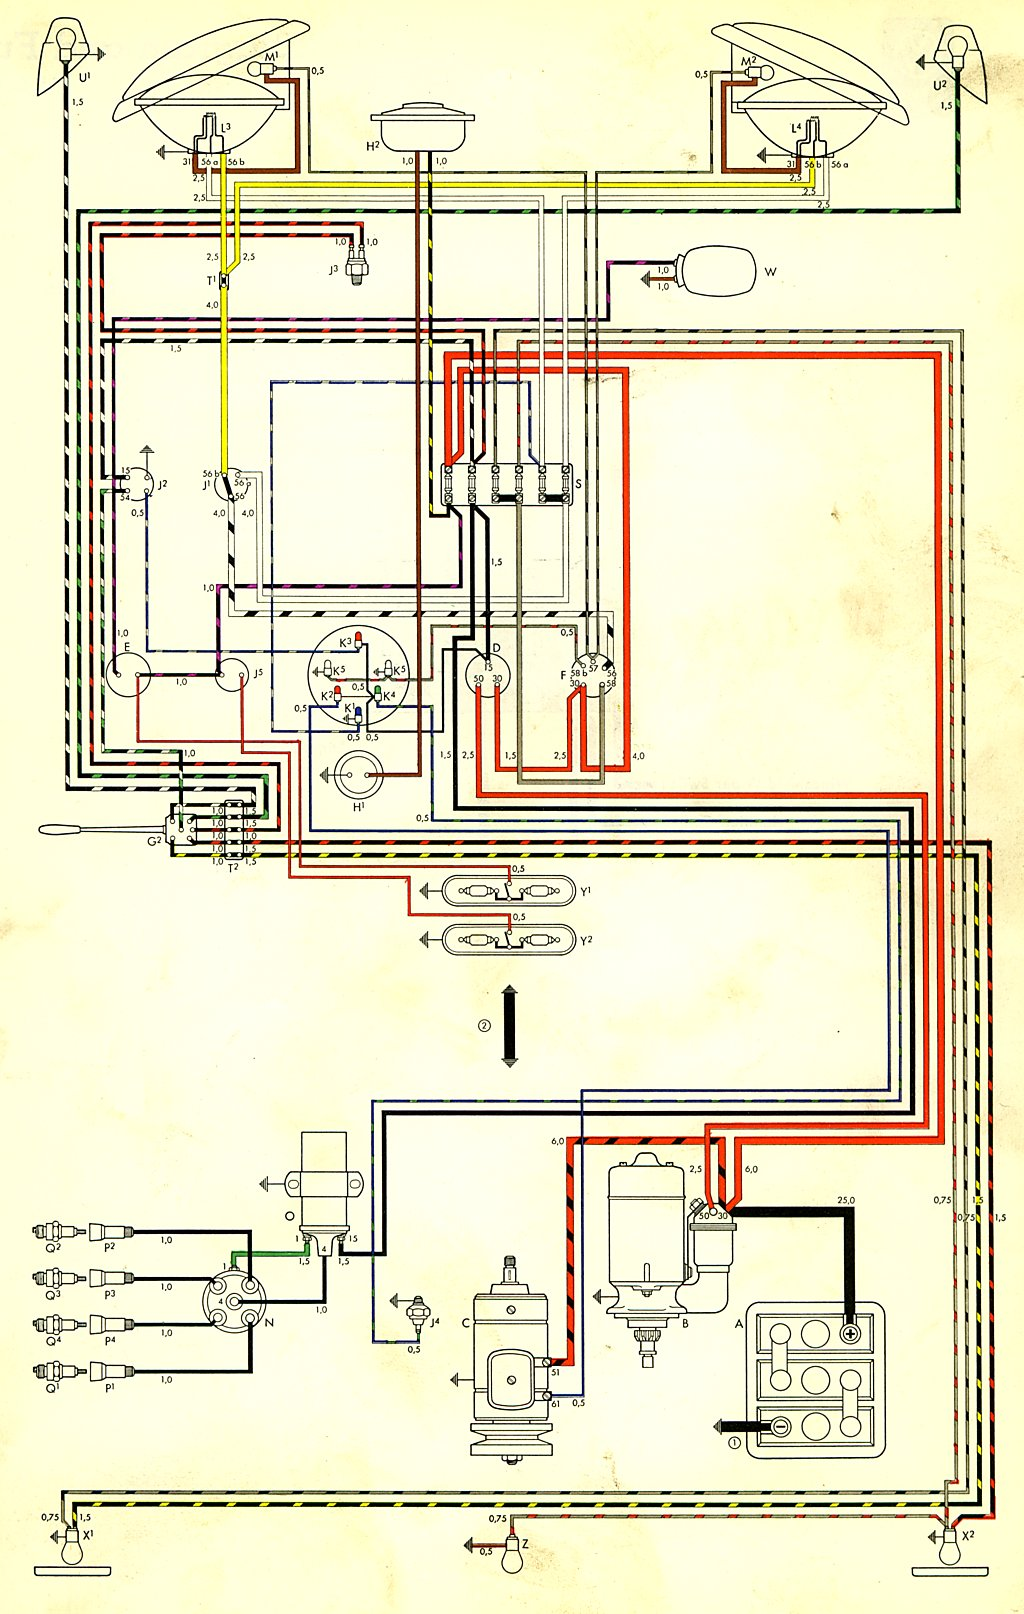 bus_59_USA 1959 bus wiring diagram (usa) thegoldenbug com Volkswagen Type 2 Wiring Harness at gsmx.co